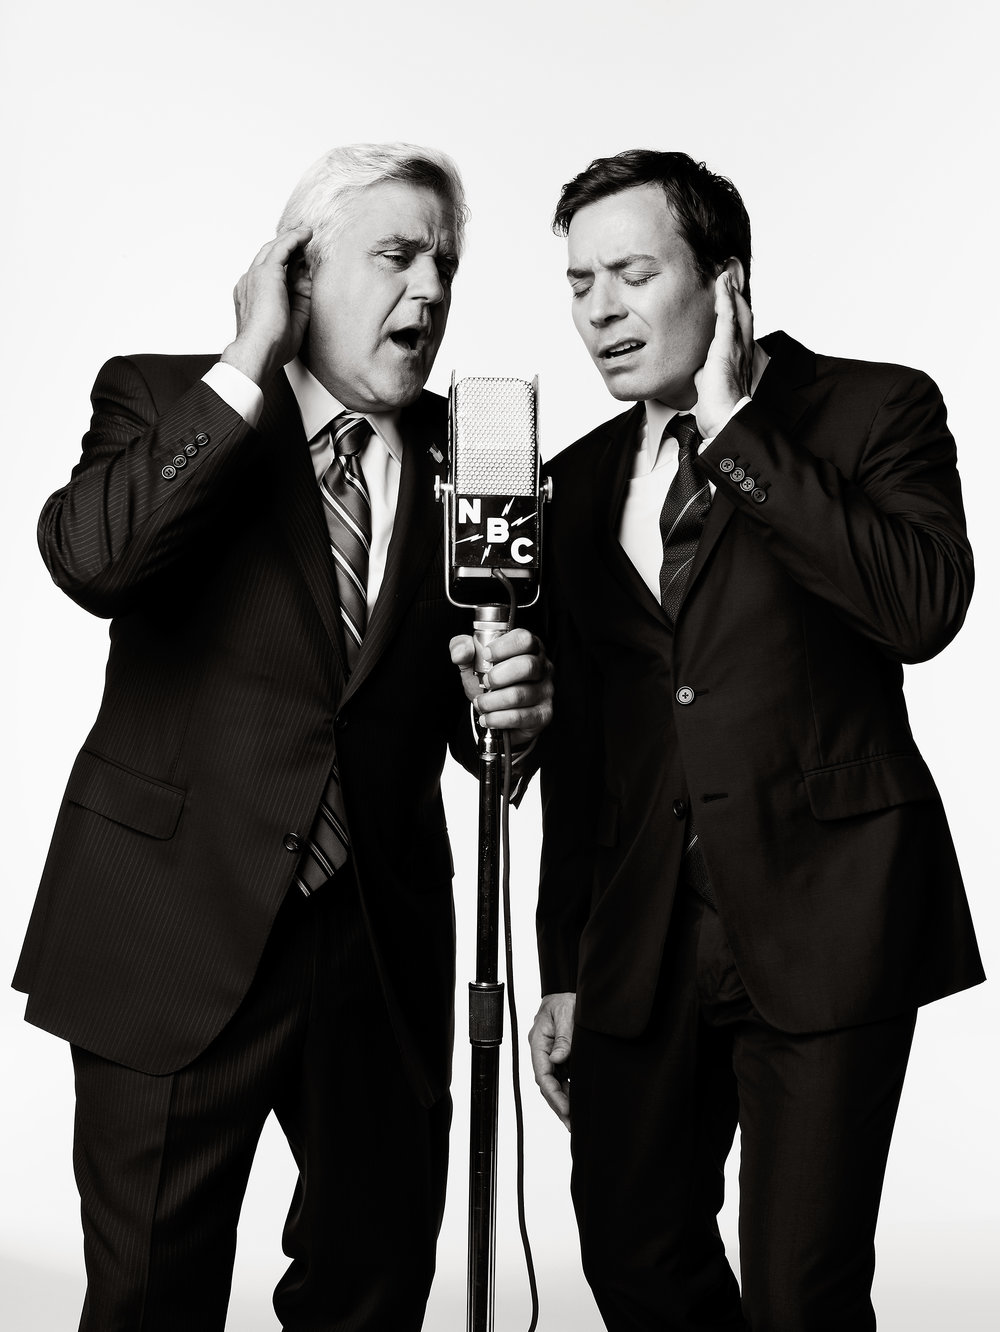 Jay Leno & Jimmy Fallon